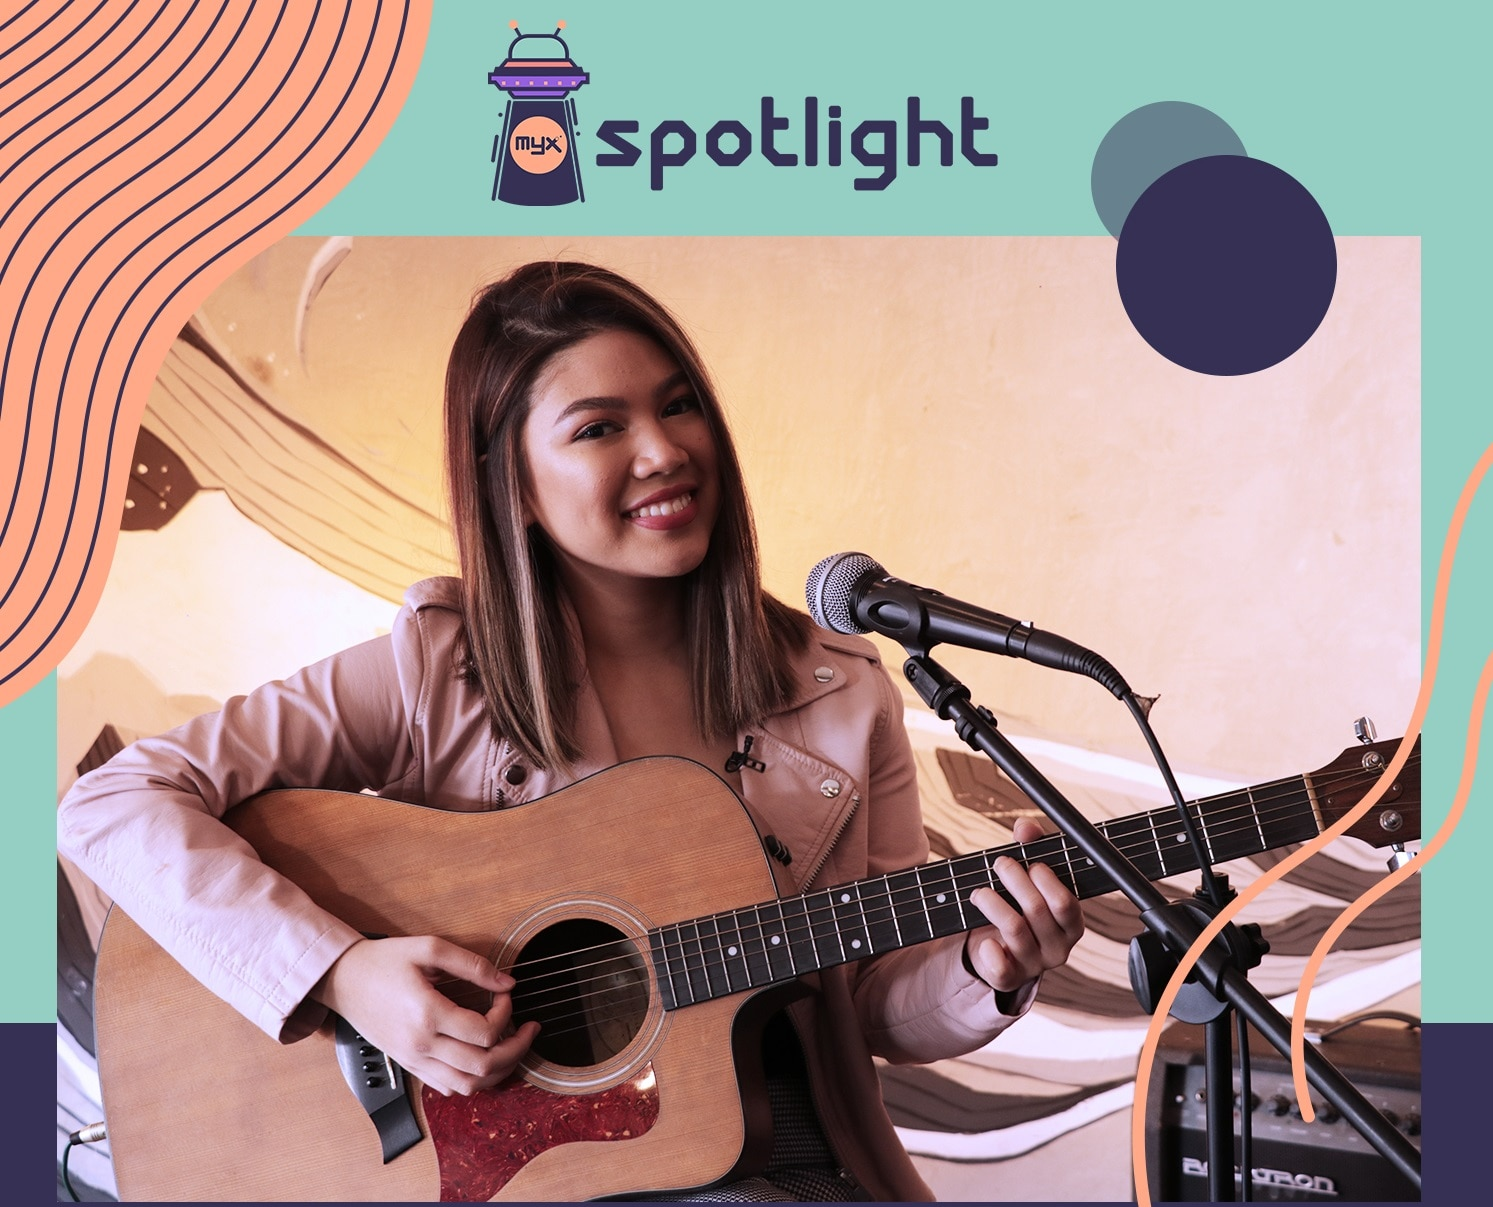 Janina Vela on MYX Spotlight